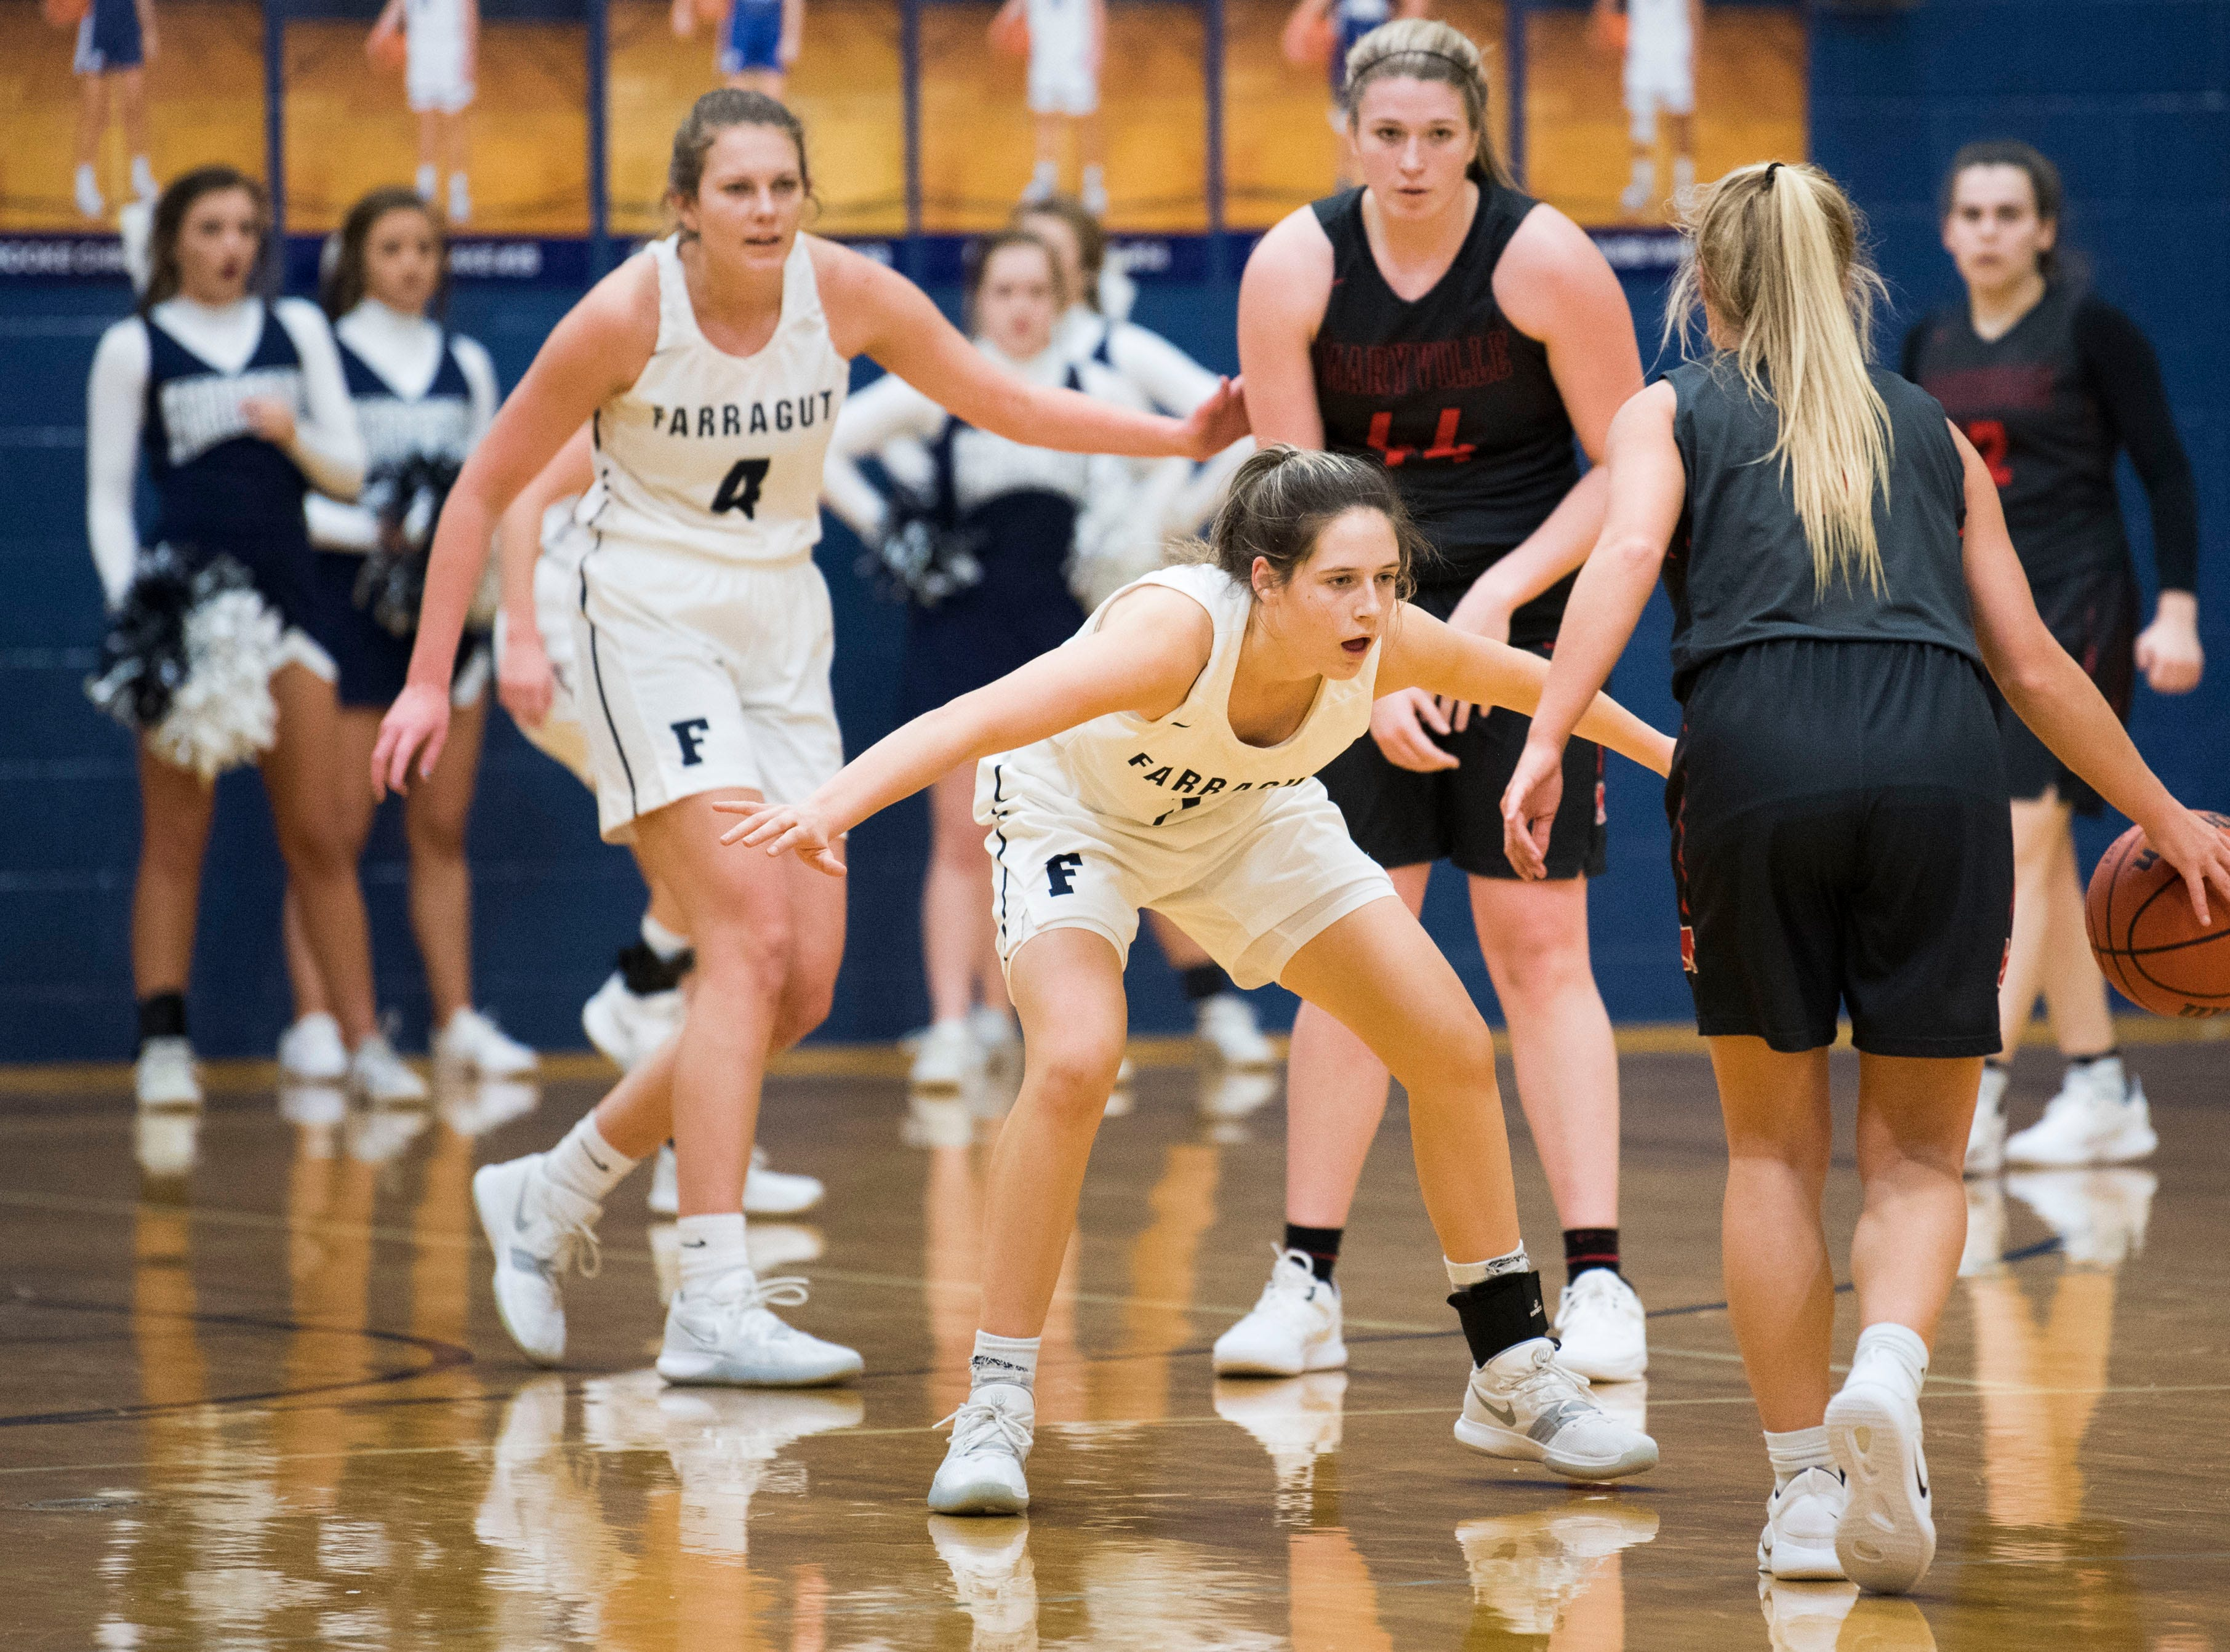 Farragut's Macy Barnes (3) defends a Maryville player during a high school basketball game between Maryville and Farragut at Farragut, Friday, Jan. 11, 2019.